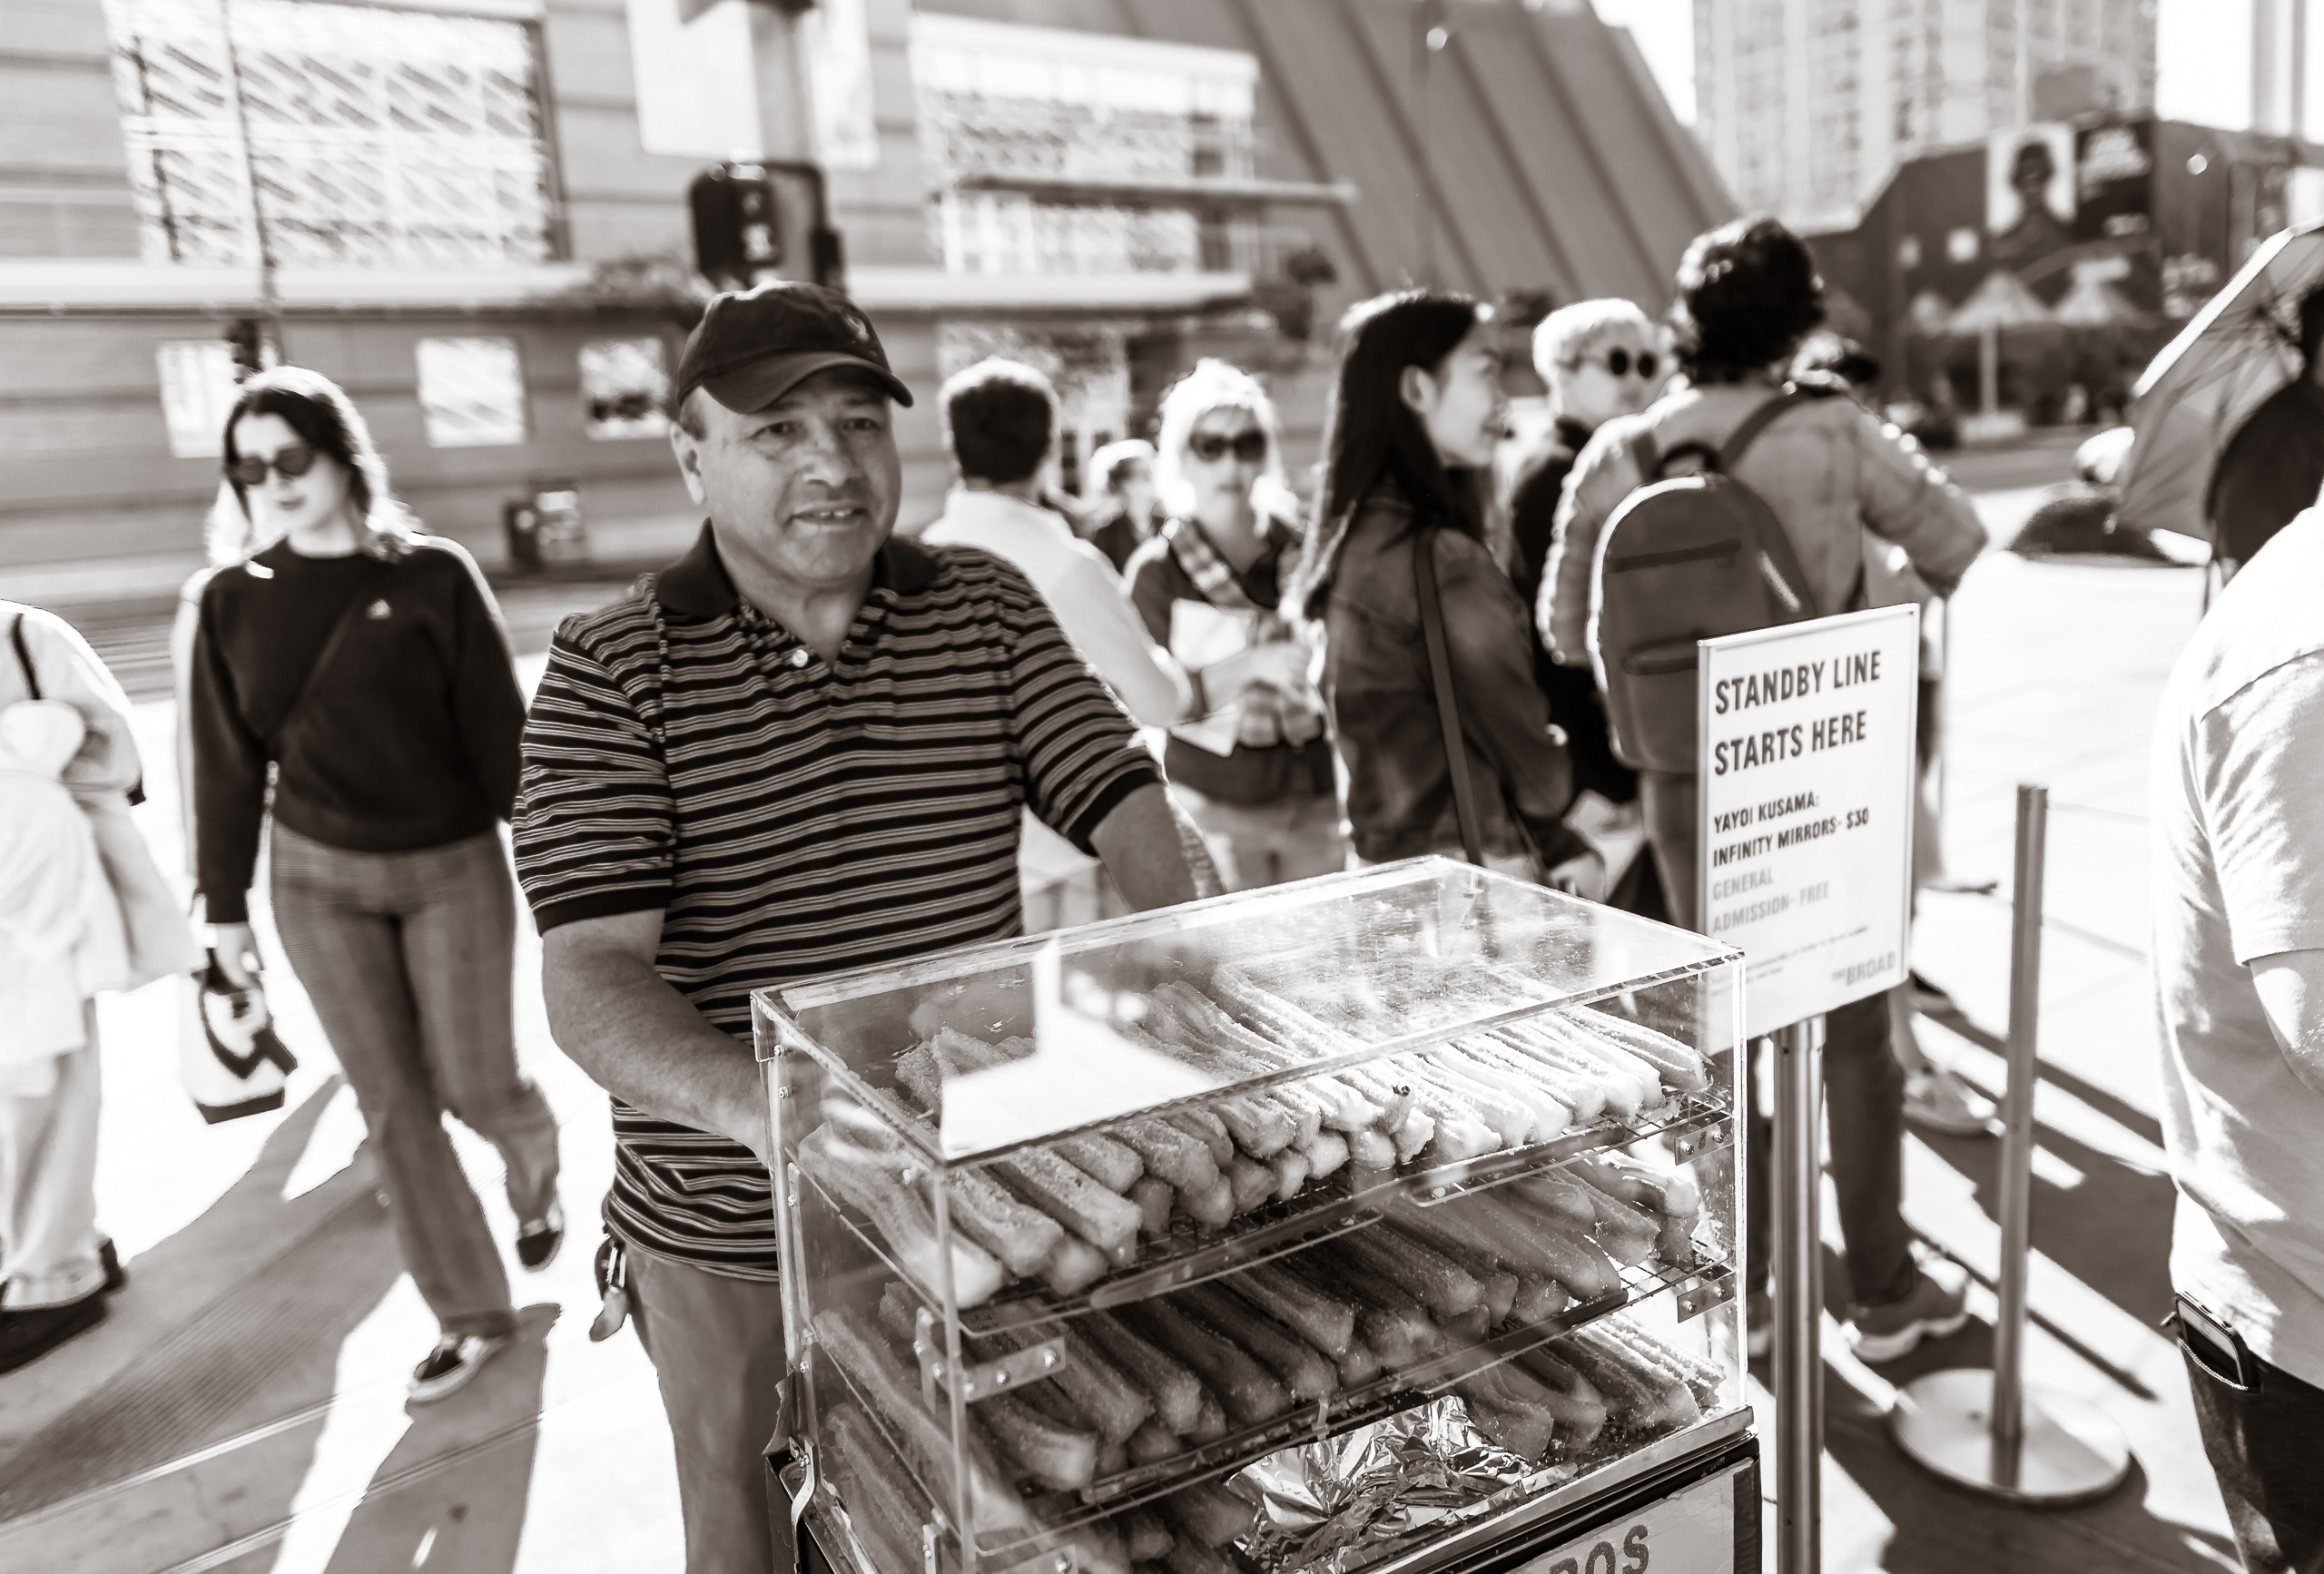 A street vendor on Grand Avenue sells fresh churros to the crowd waiting in the long standby line at the Yayoi Kusama exhibition at The Broad Museum in Downtown Los Angeles